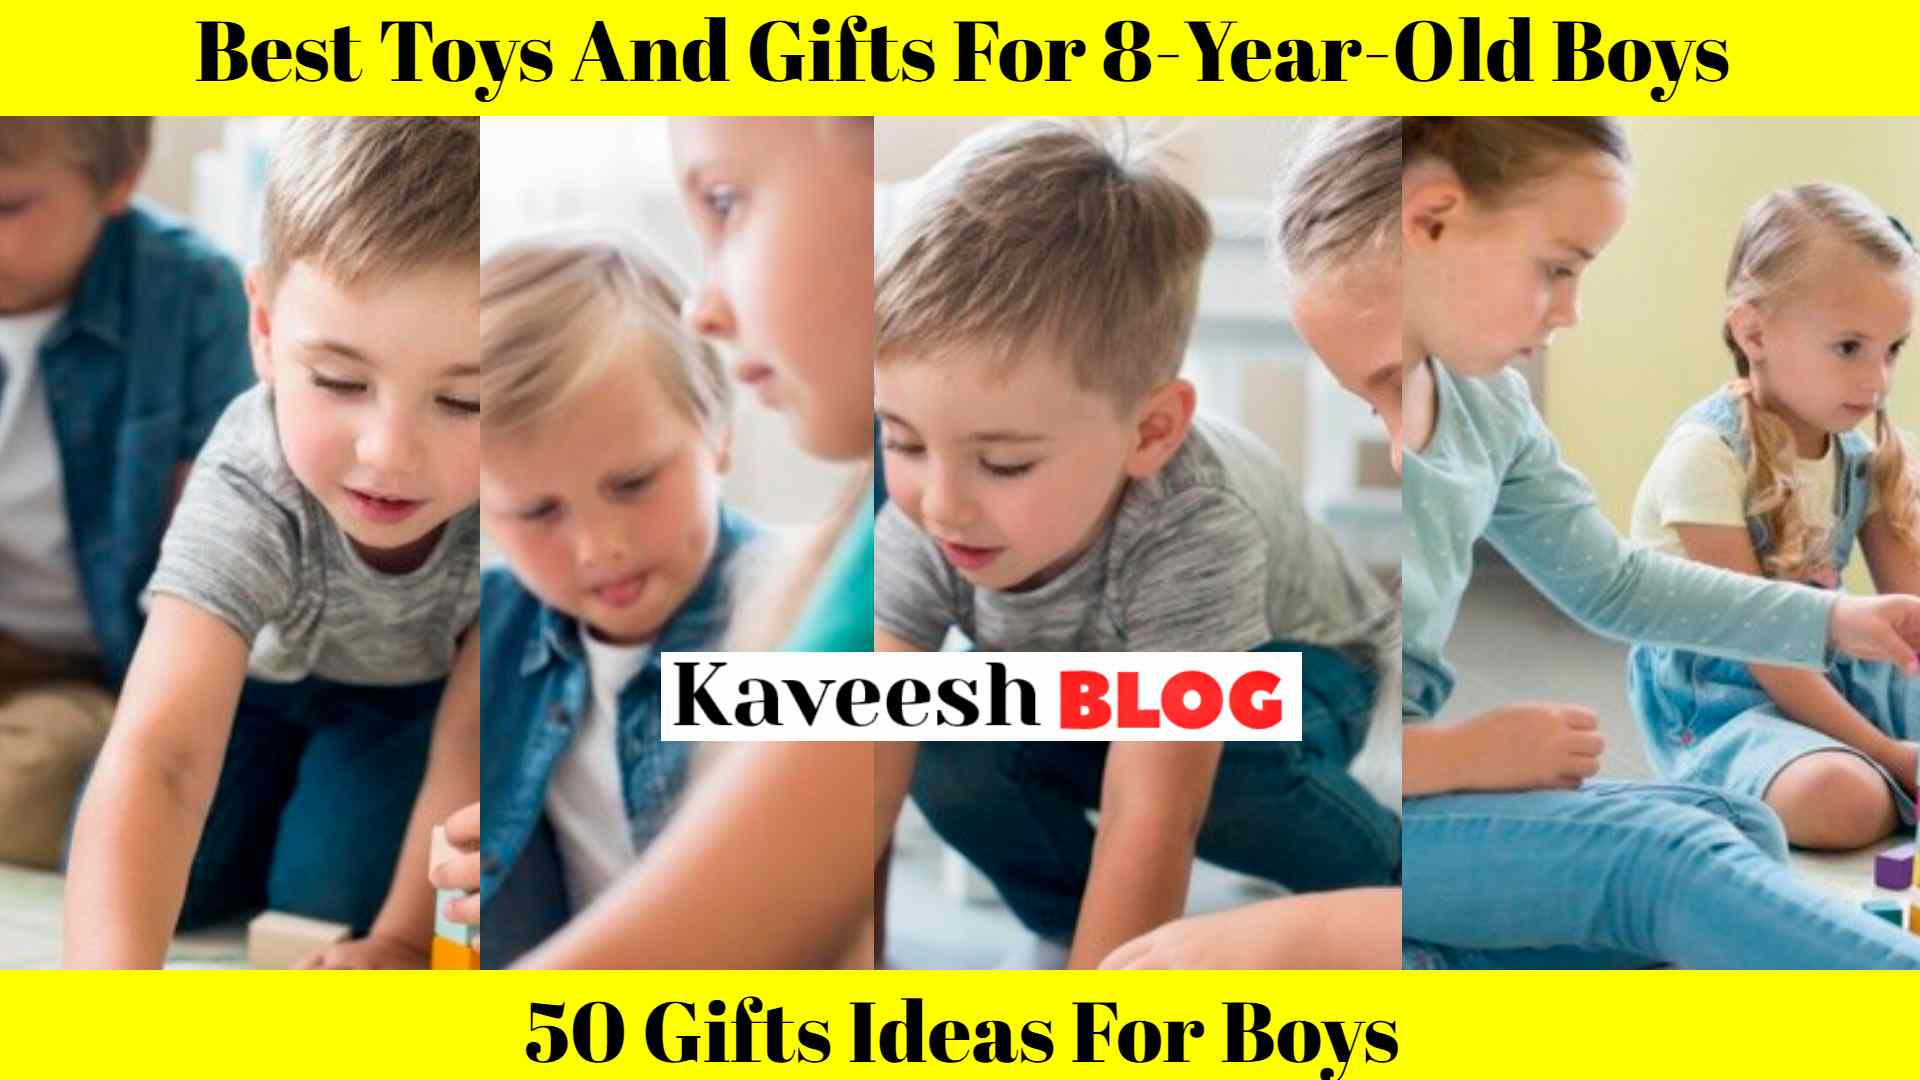 Best Gifts For 8-year-old Boys In (2020)